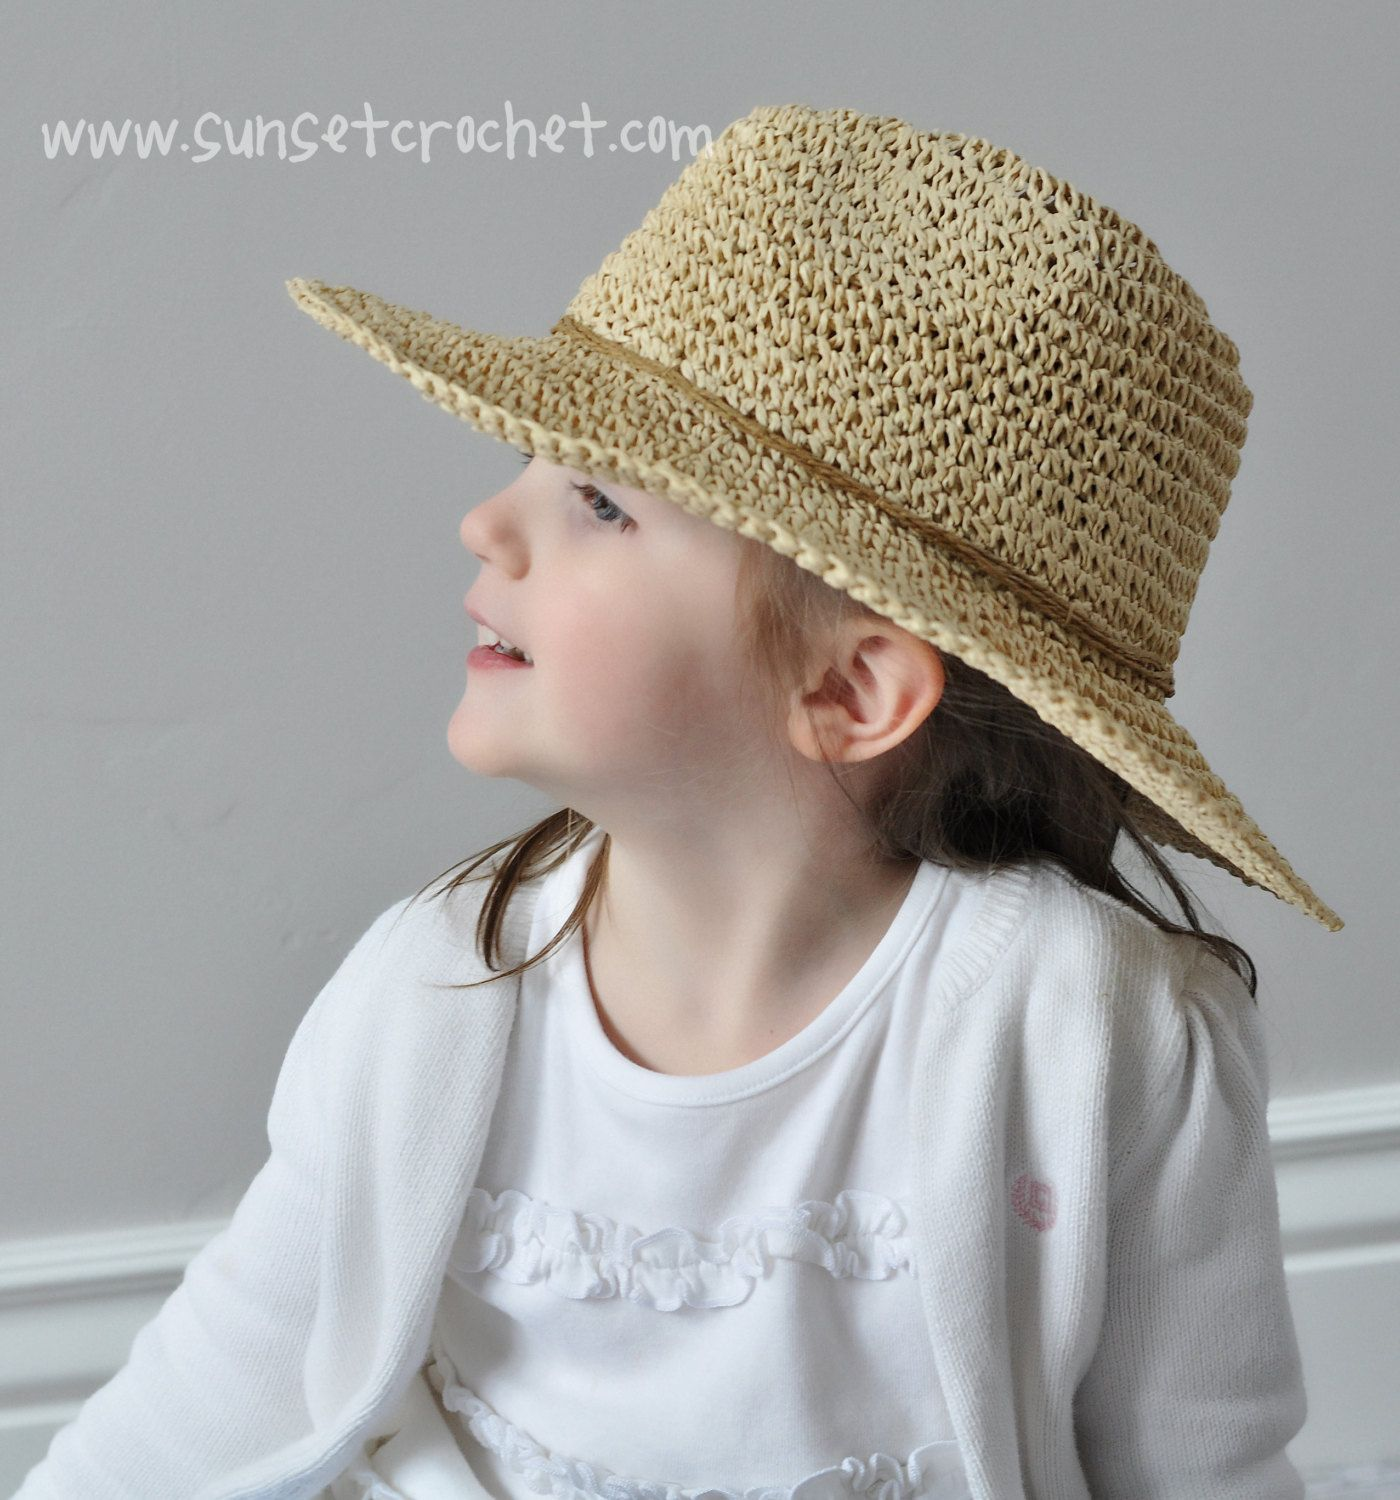 Wide brimmed summer sunhat straw hat crochet pattern 269 hat wide brimmed summer sunhat straw hat crochet pattern 269 bankloansurffo Gallery